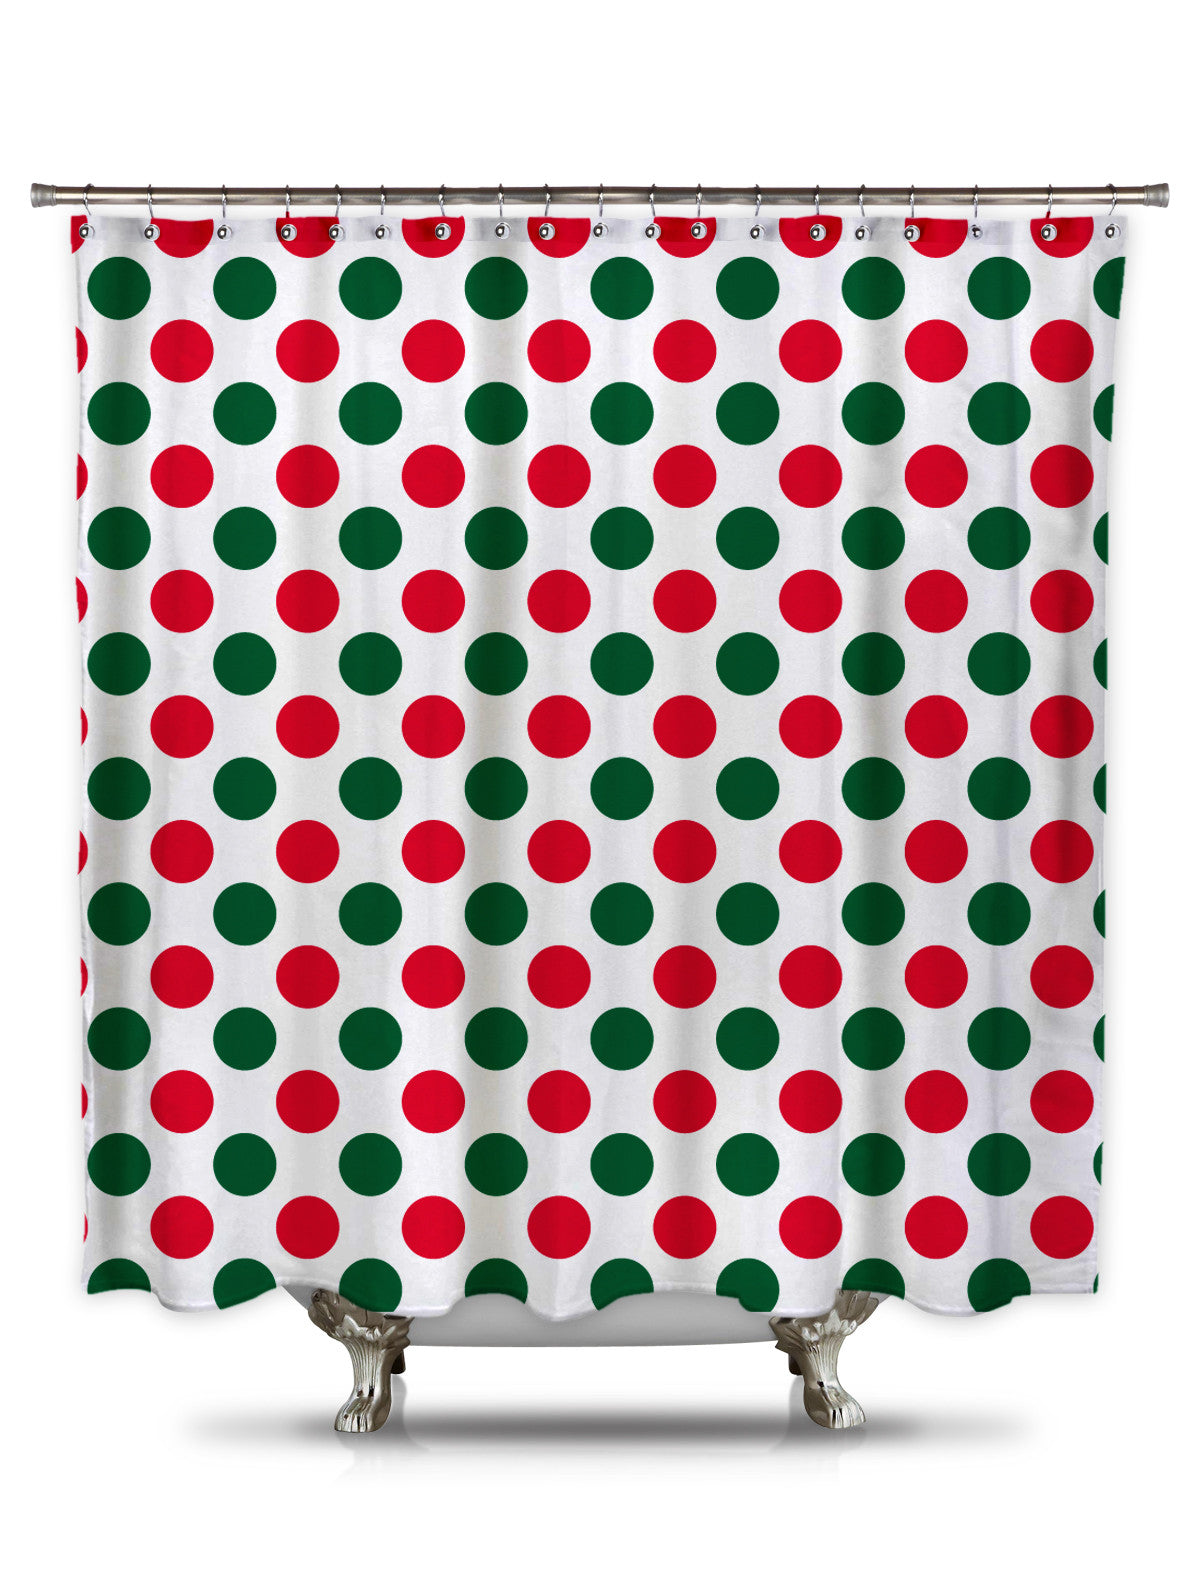 Red and Green  Polk-A-Dot Fabric Shower Curtain